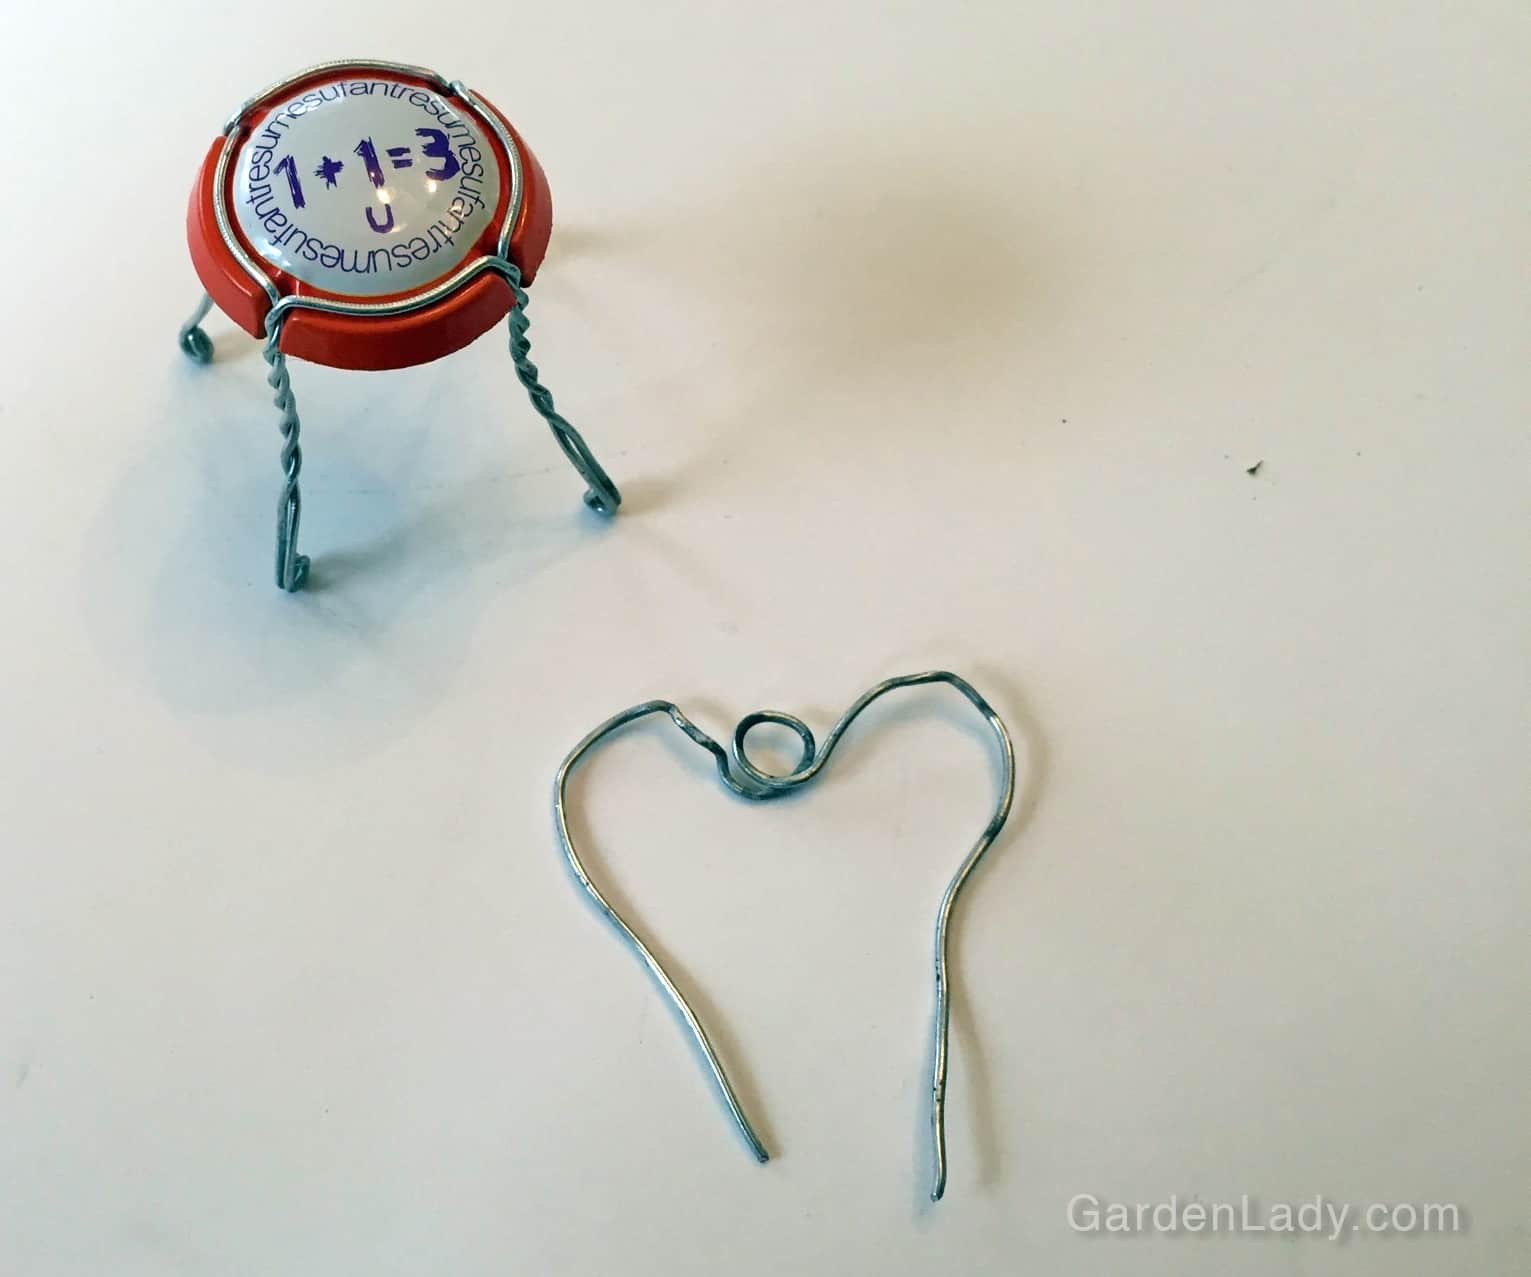 Find the middle of the wire - decide if you want to bend it into a round top, have a circle or other crimping, or make it into a heart shape.